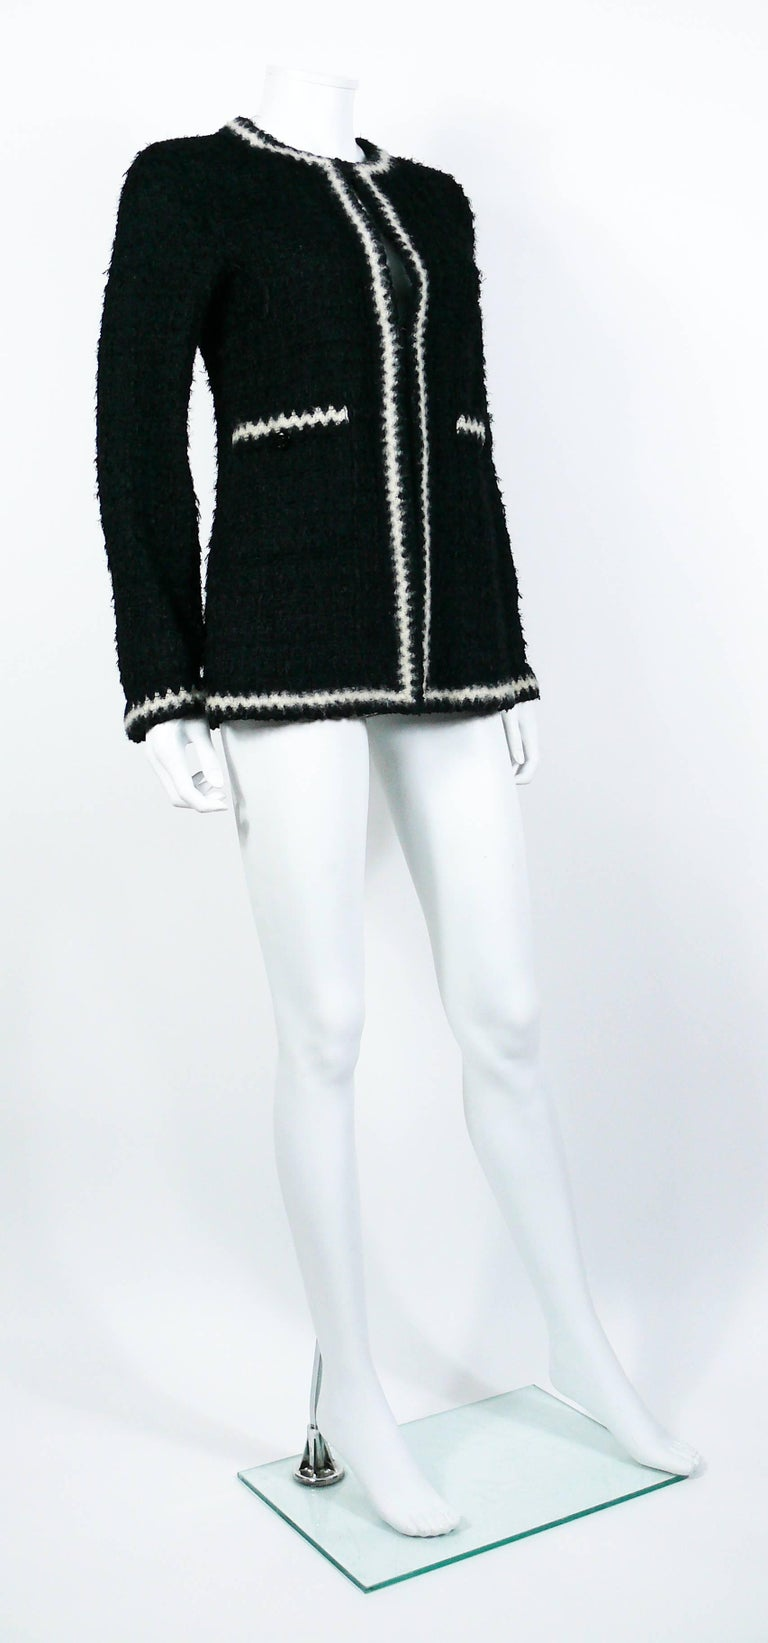 CHANEL vintage iconic black and white contrast zig-zag trim boucle cardigan jacket.  From the Fall/Winter 1998 Collection. Similar model phtographied by PETER LINDBERGH for VOGUE ITALIA, July 1998  This jacket features : - Classic timeless CHANEL